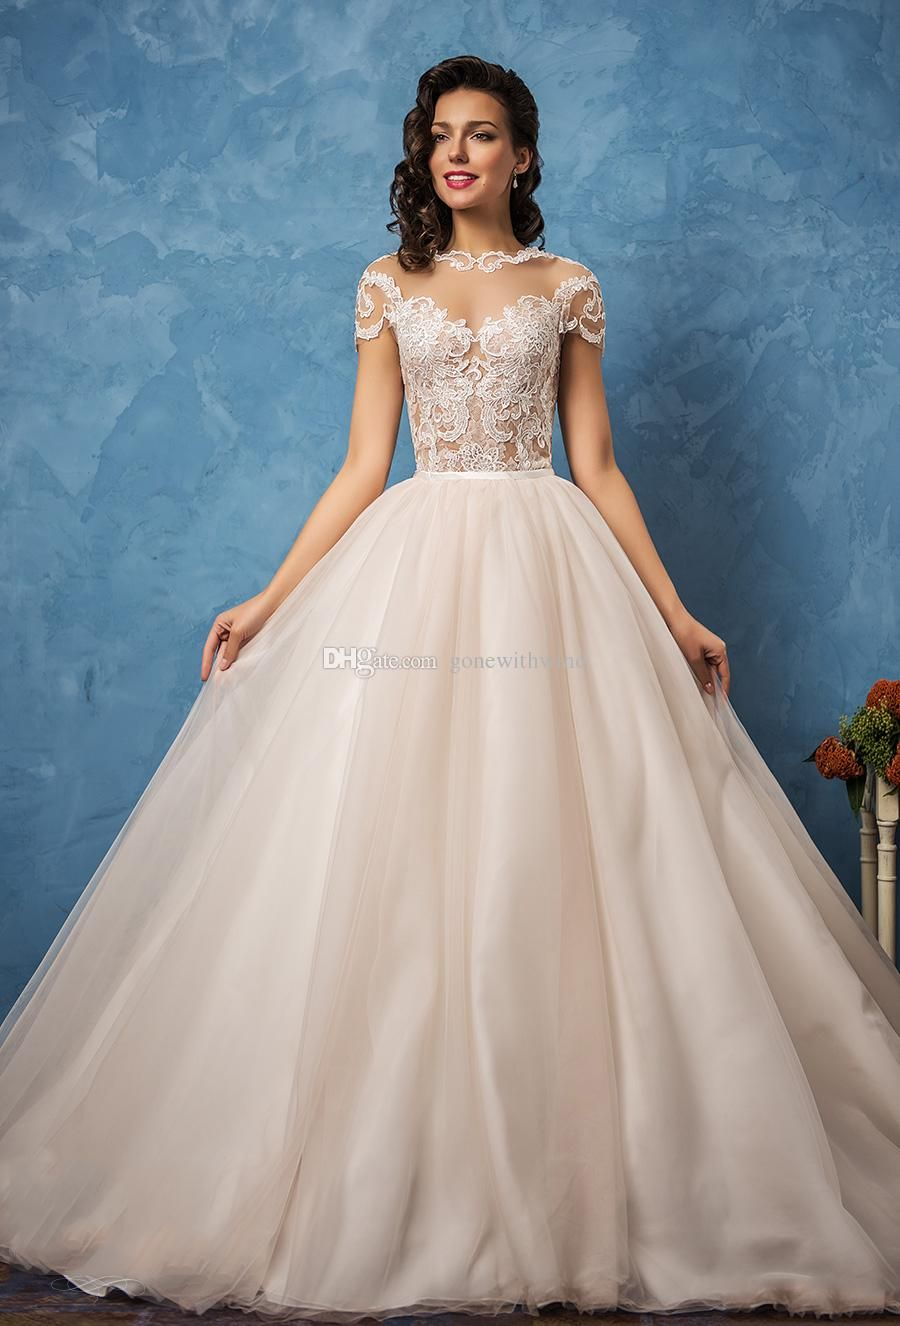 Princess Ball Gown Wedding Dresses 2017 Amelia Sposa Bridal Short Sleeves Sheer Bateau Sweetheart Neckline Lace